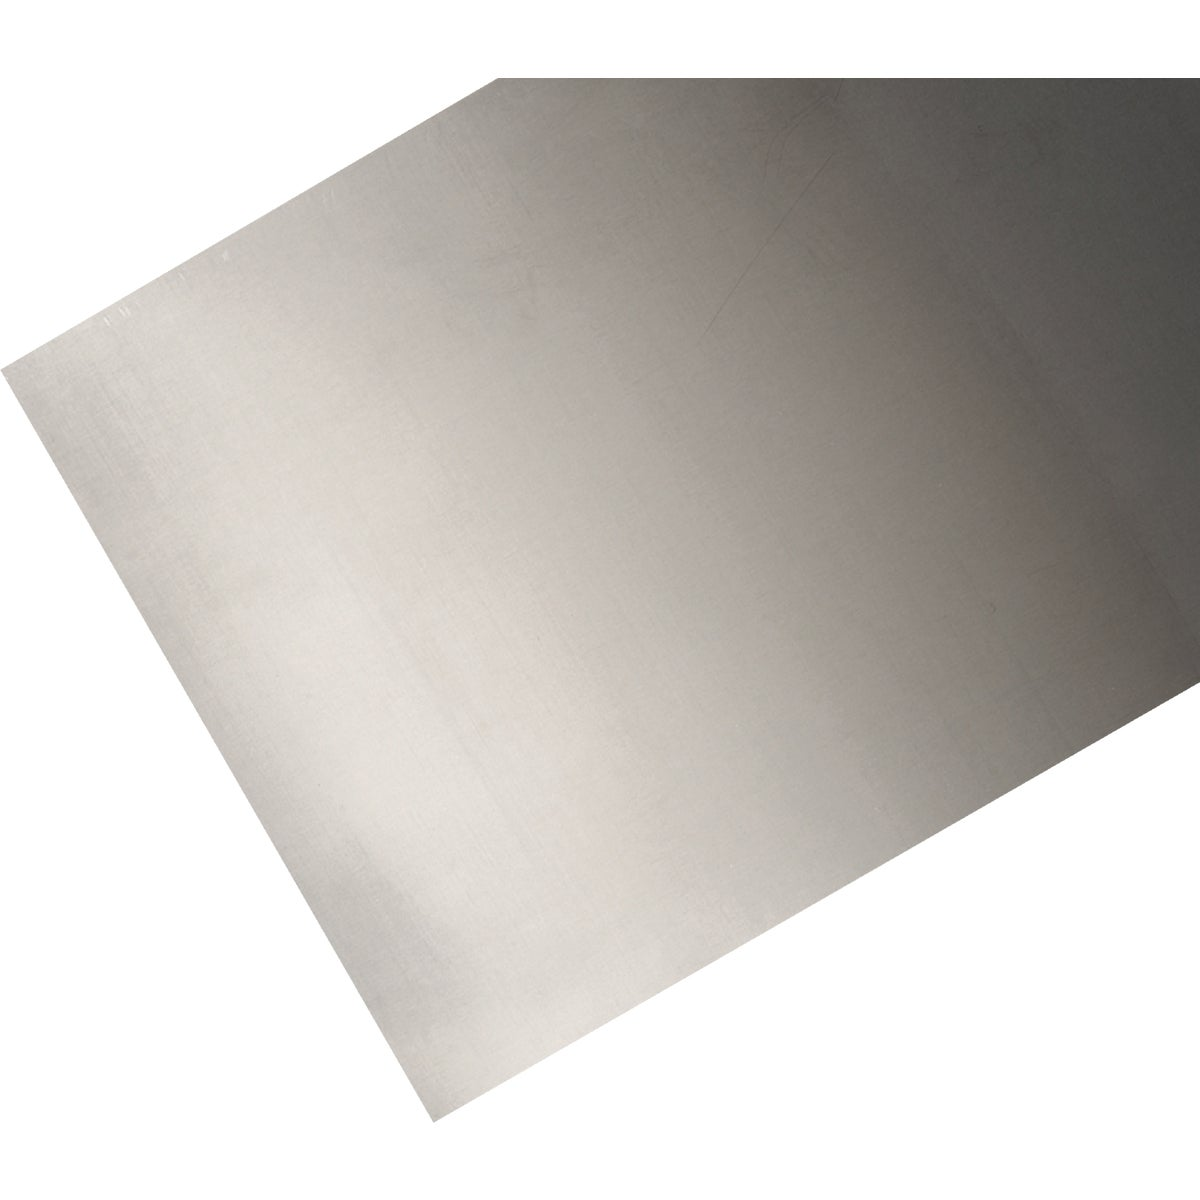 3X2 GALV STEEL SHEET